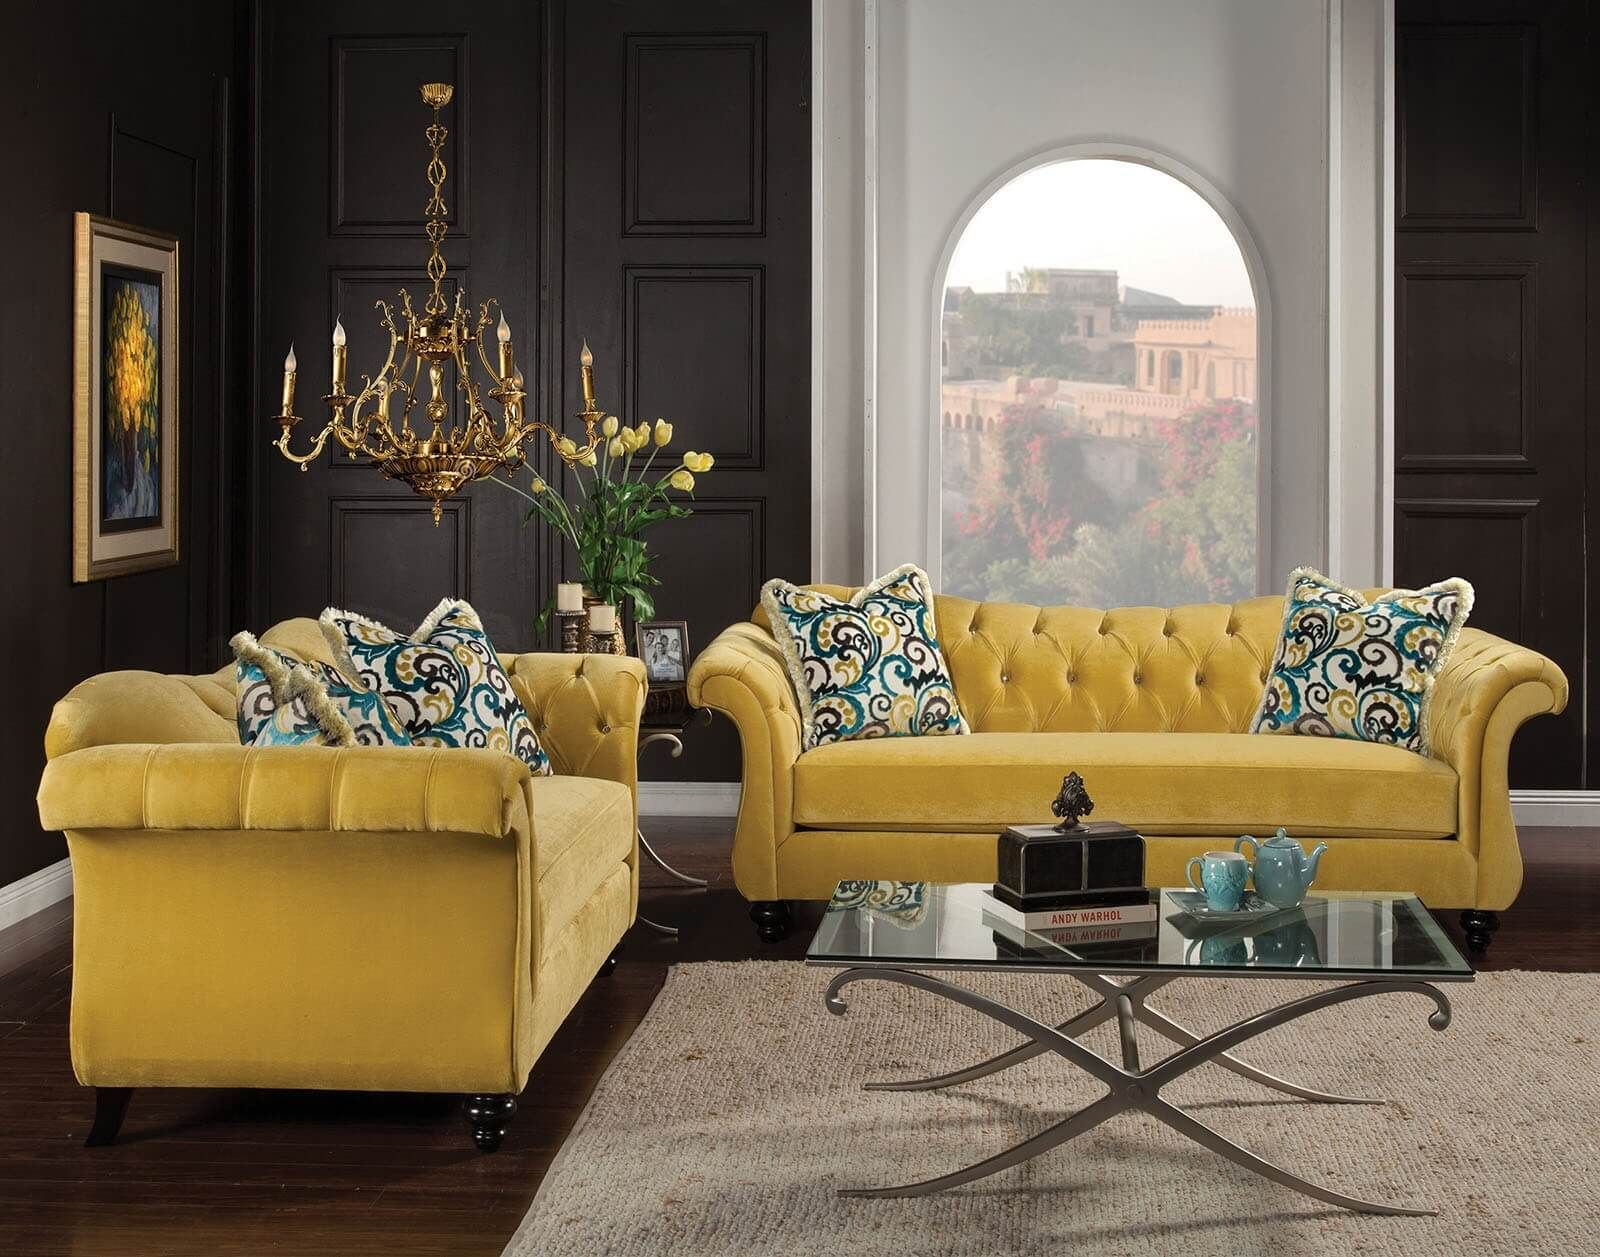 2 piece royal yellow tufted sofa set made in